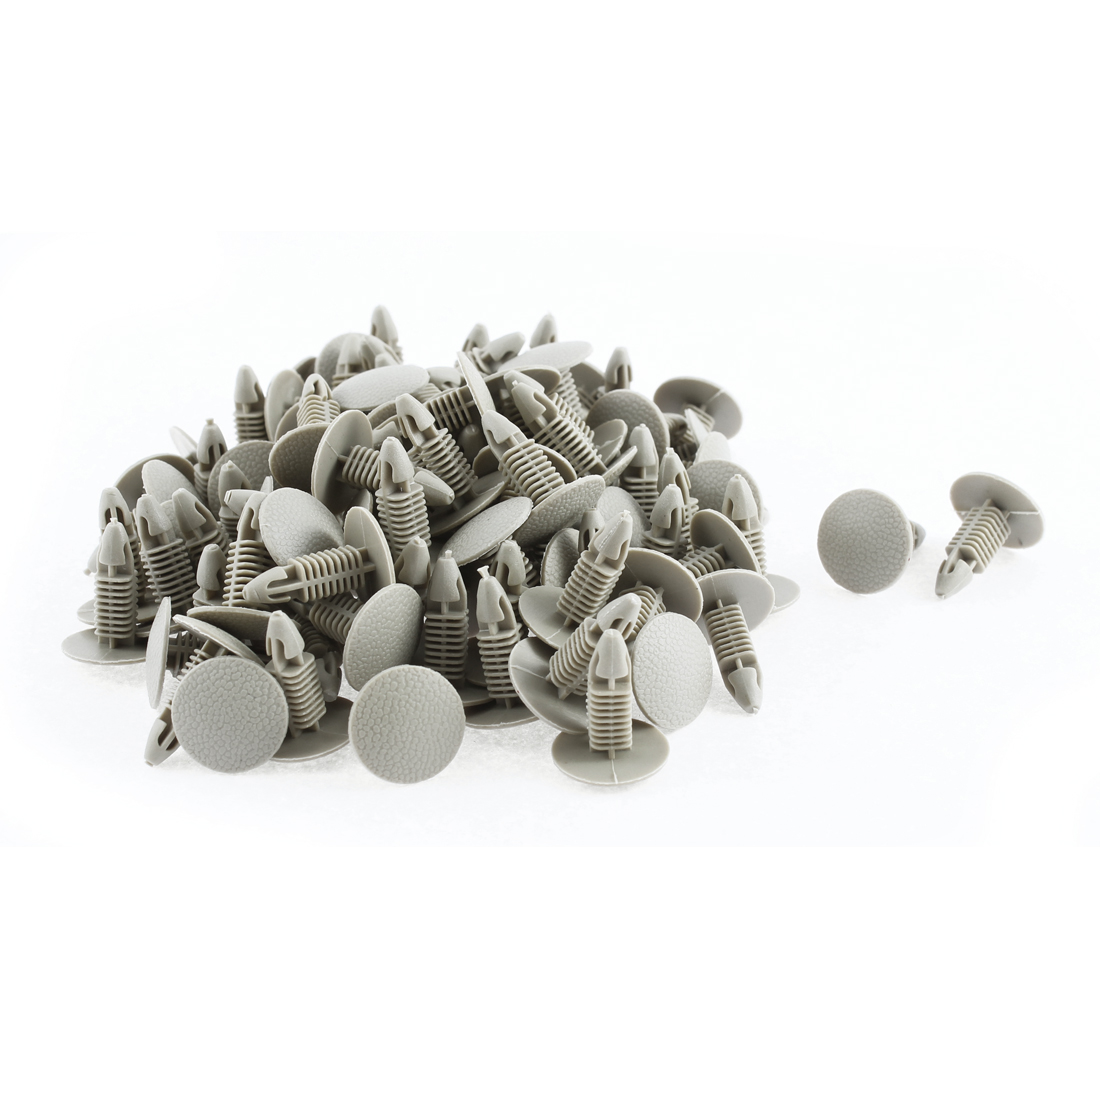 100 Pcs Khaki Plastic Buckle Ceiling Trim Rivets Clips for Hyundai